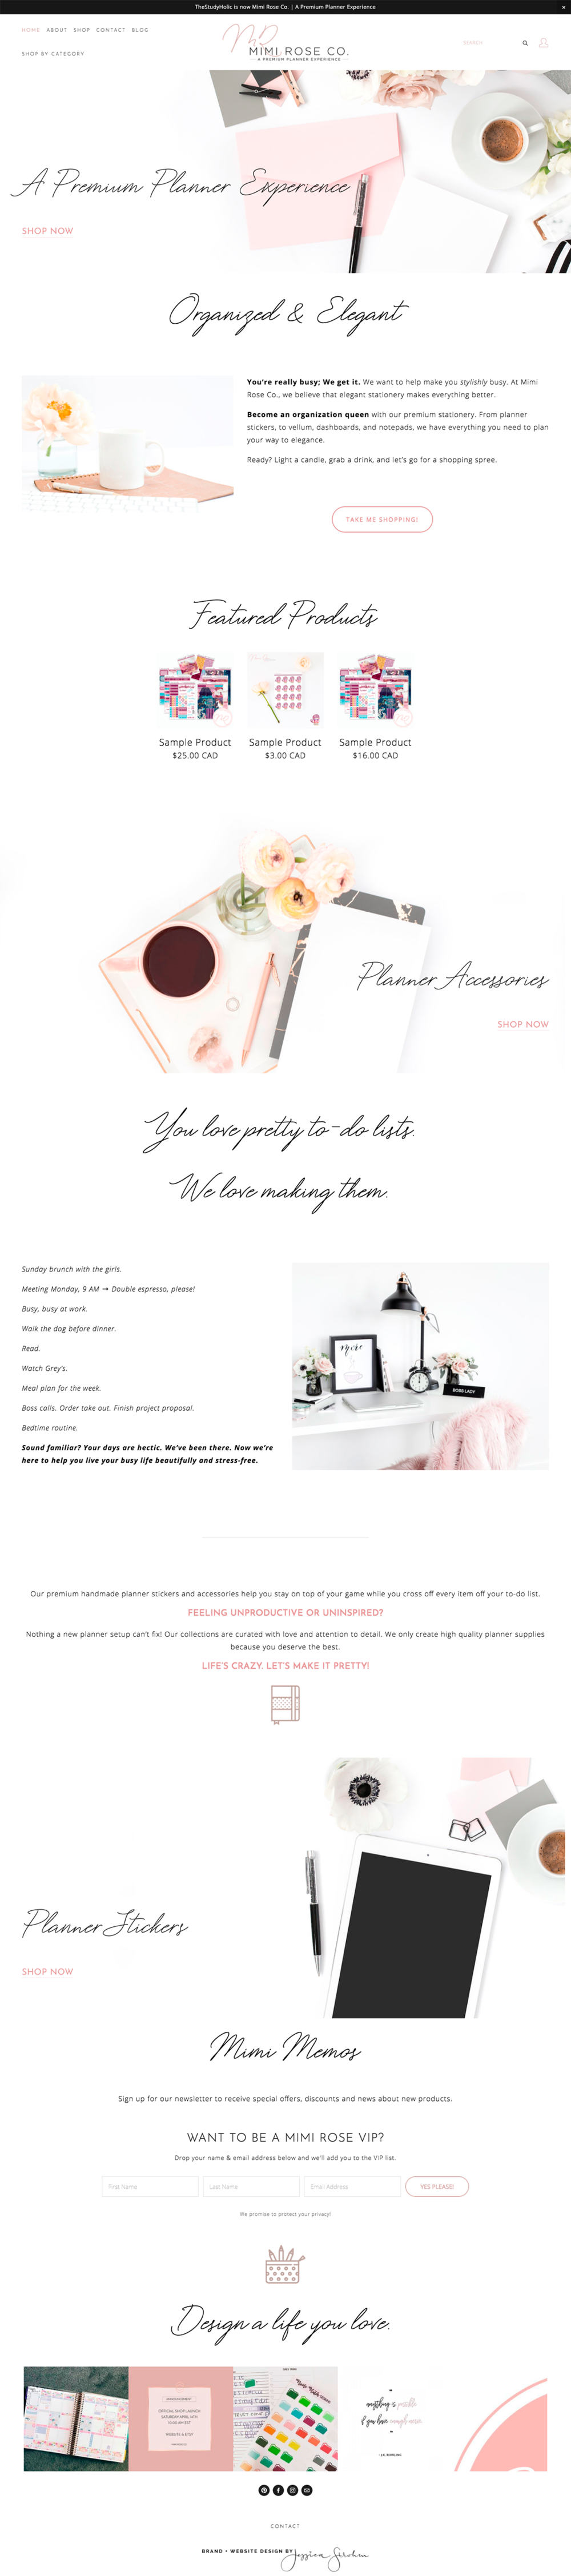 Mimi+Rose+Co+Website+Preview.png